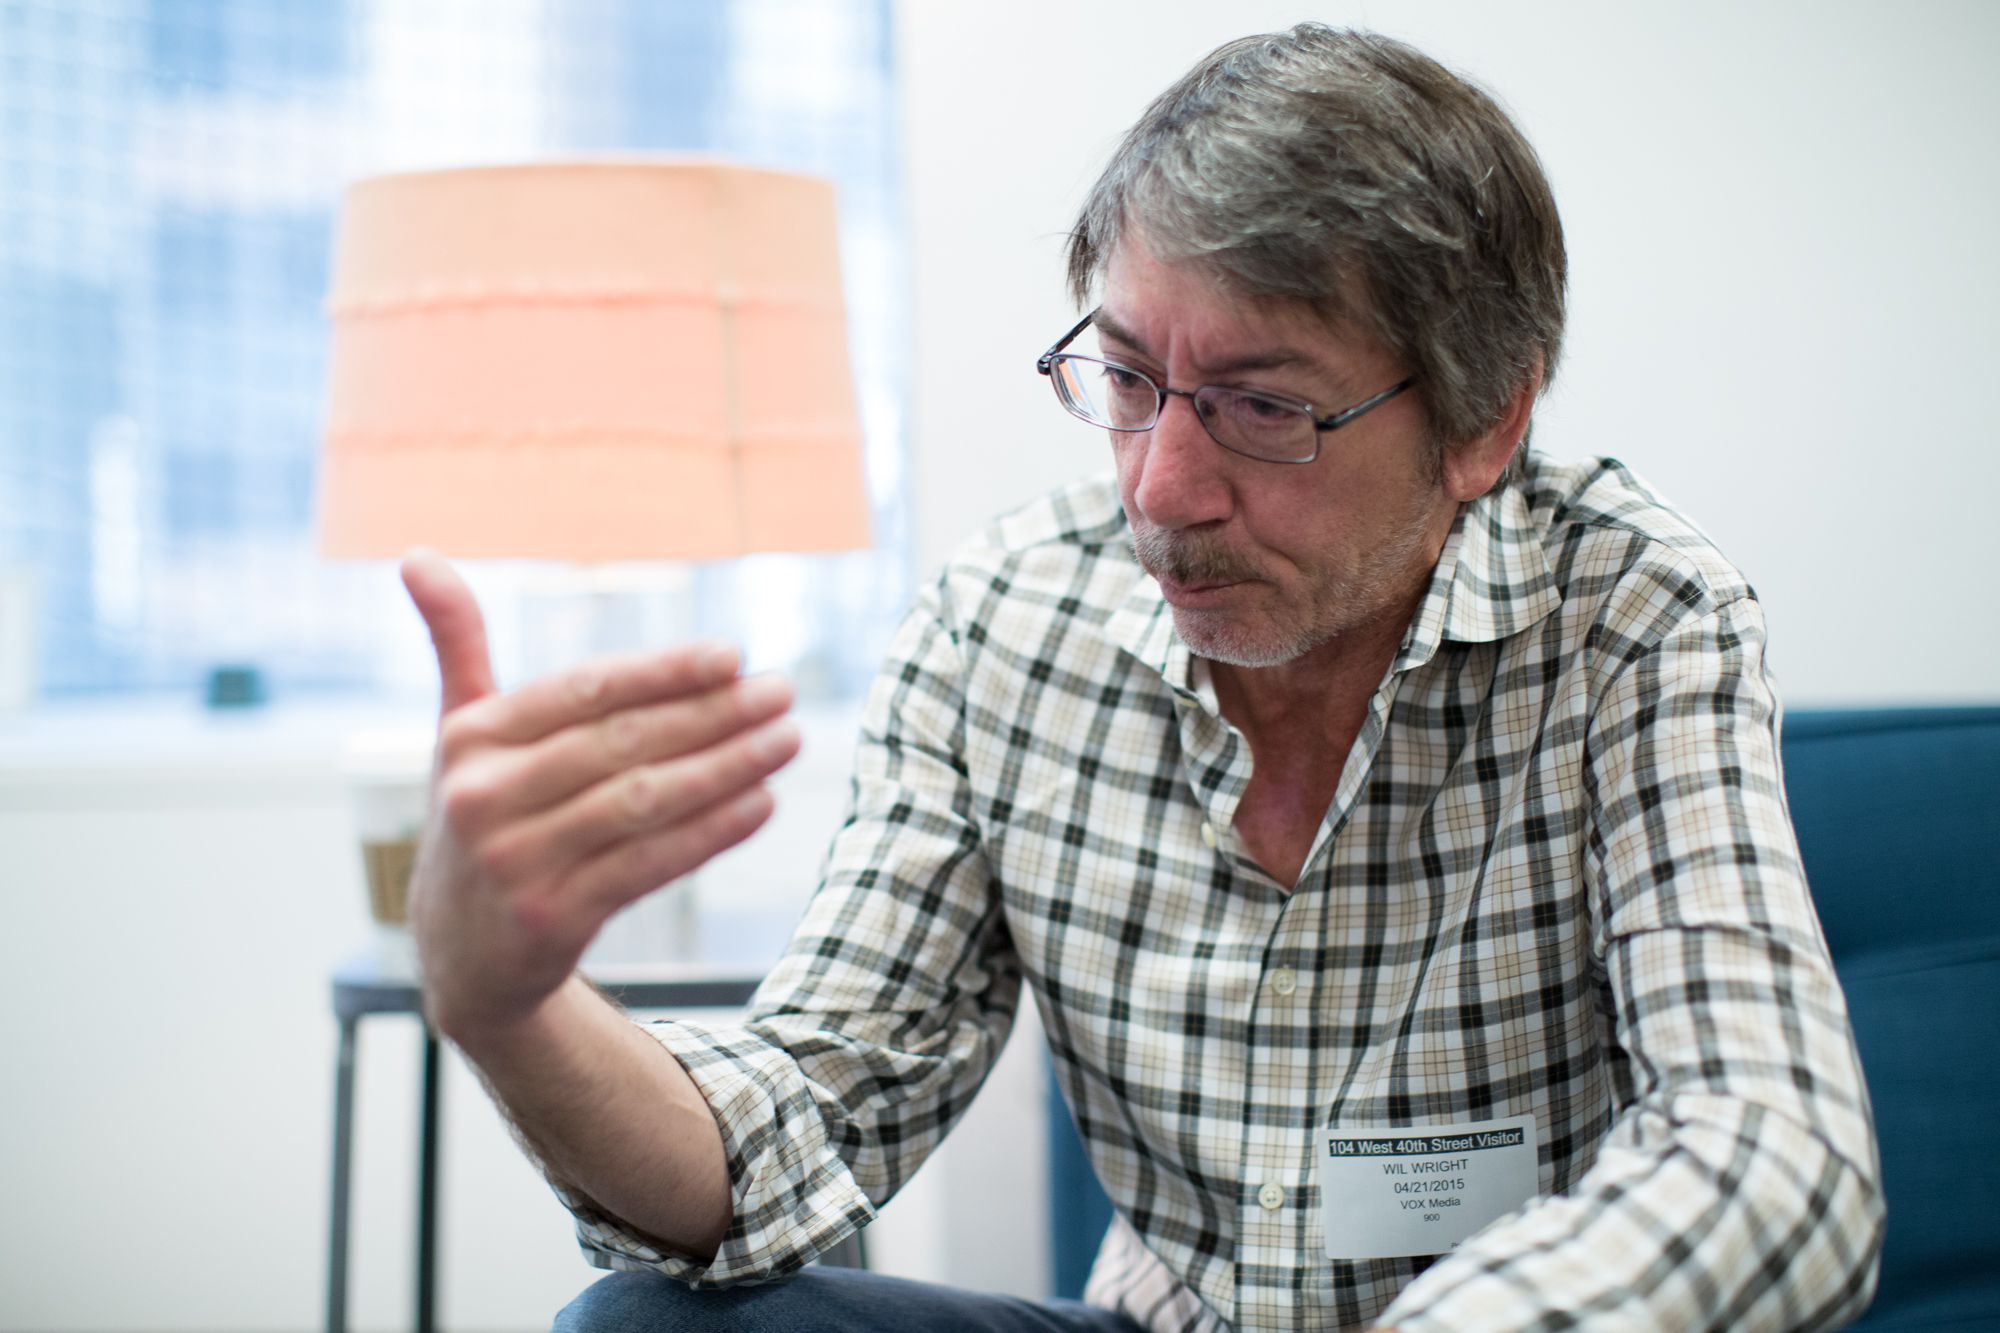 Is there a service that will wright a comic out of a story I wright?